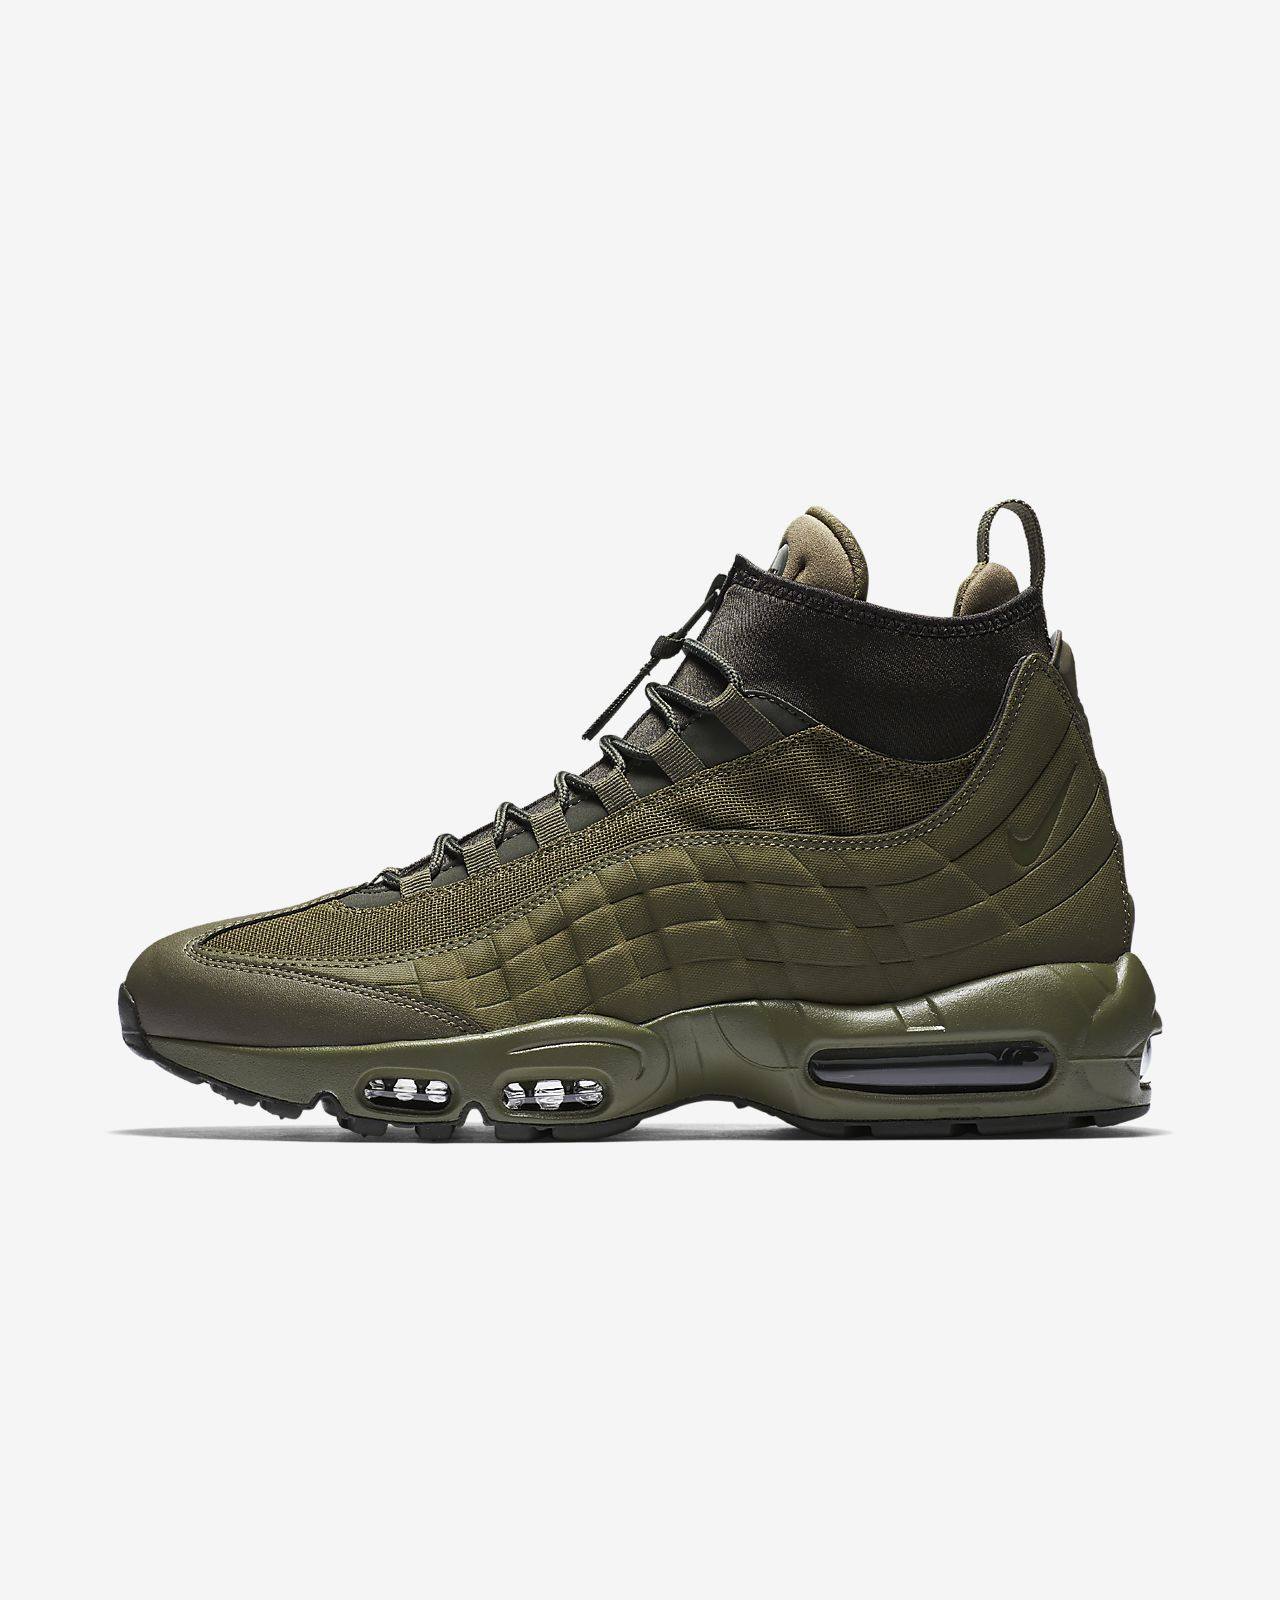 Nike Nike Air Max 95 Sneakerboot Marron etSKtjdu5E